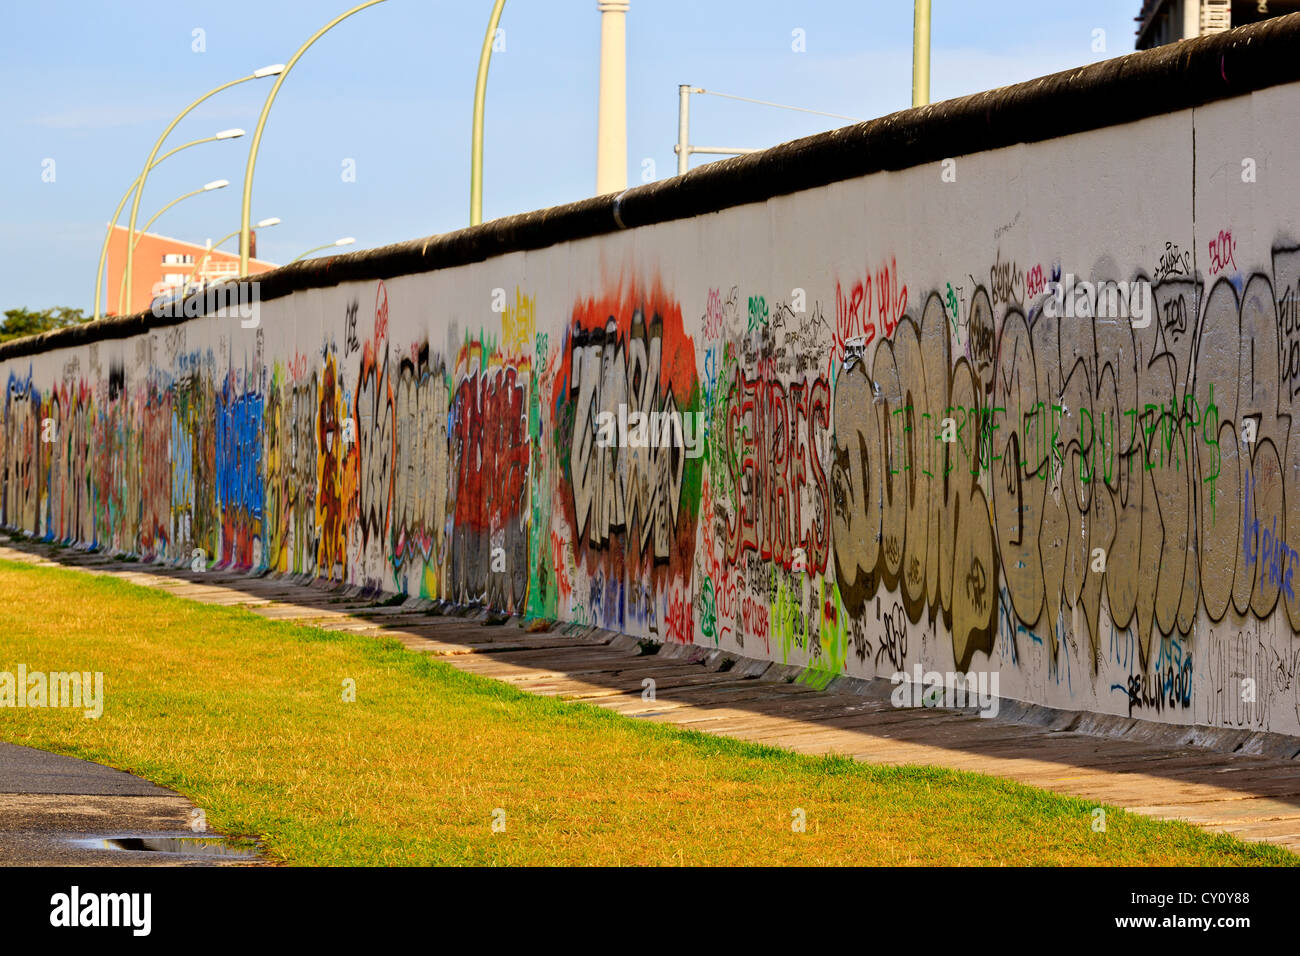 Berlin Wall Berlin Germany colourful decorated Berlin Wall along the Spree River West Side of wall - Stock Image